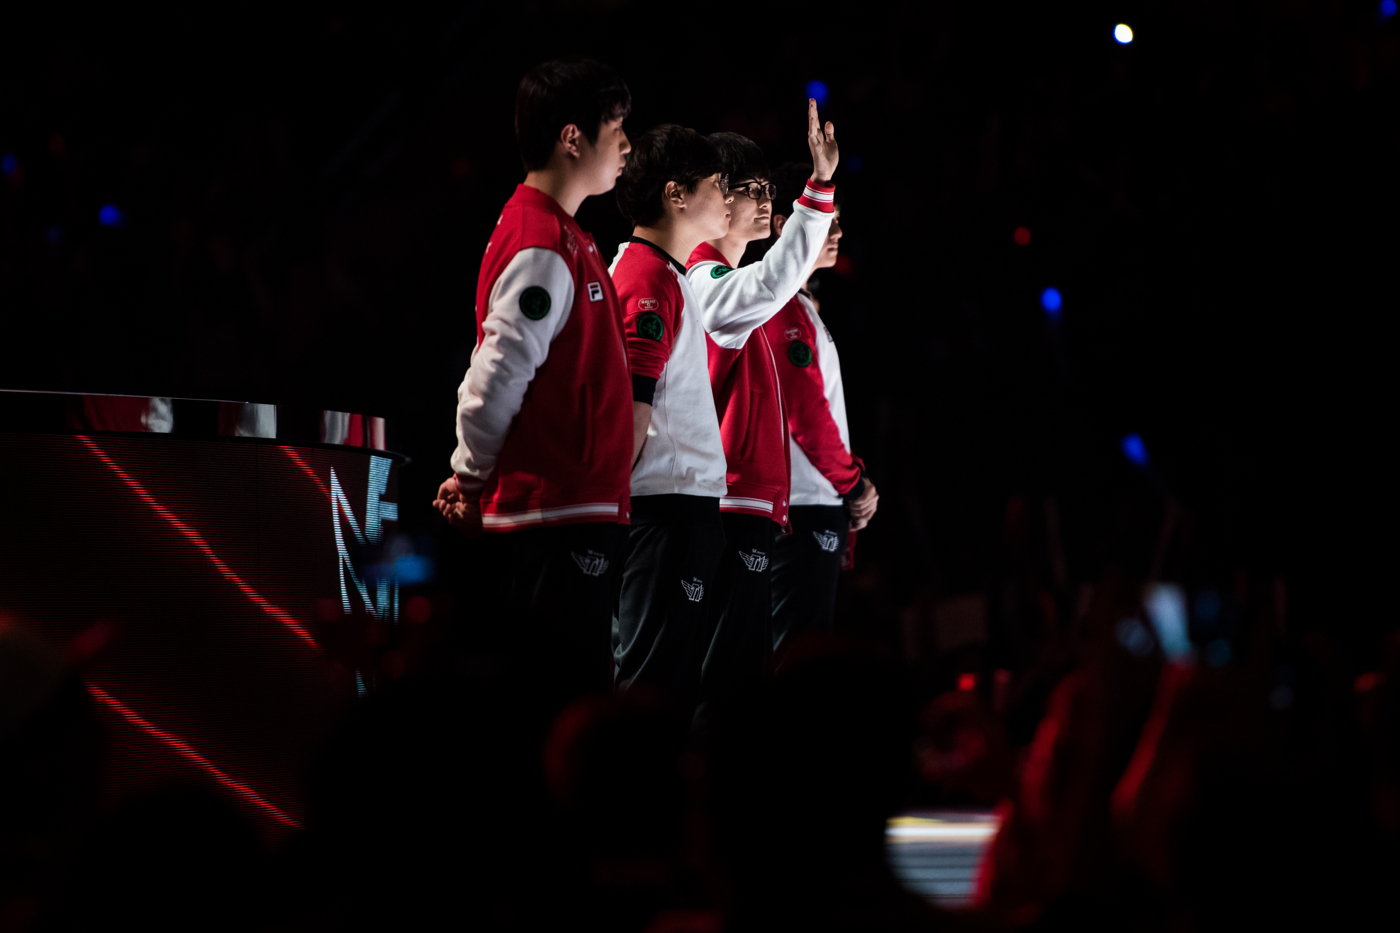 """Lee """"Faker"""" Sang-hyeok, second from right, likely the greatest player in the history of League of Legends, waves to the crowd ahead of his team's semifinal match."""